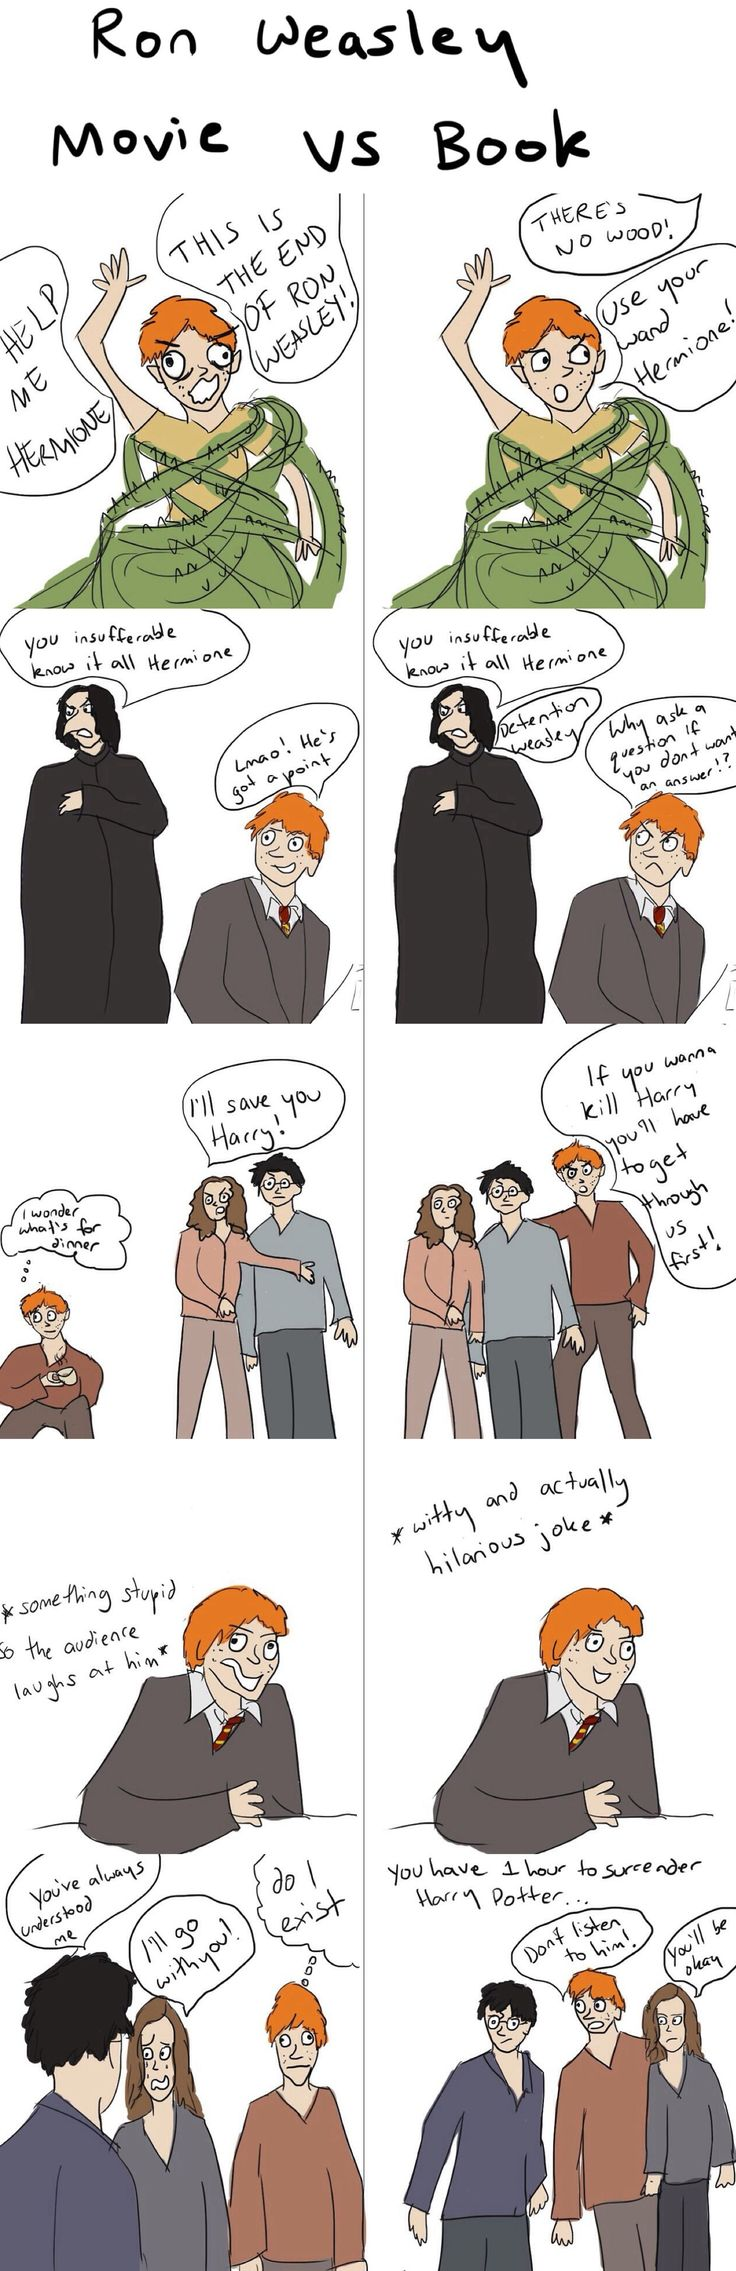 Harry Potter Book Vs Movie Differences : Movie ron vs book harry potter comics pinterest